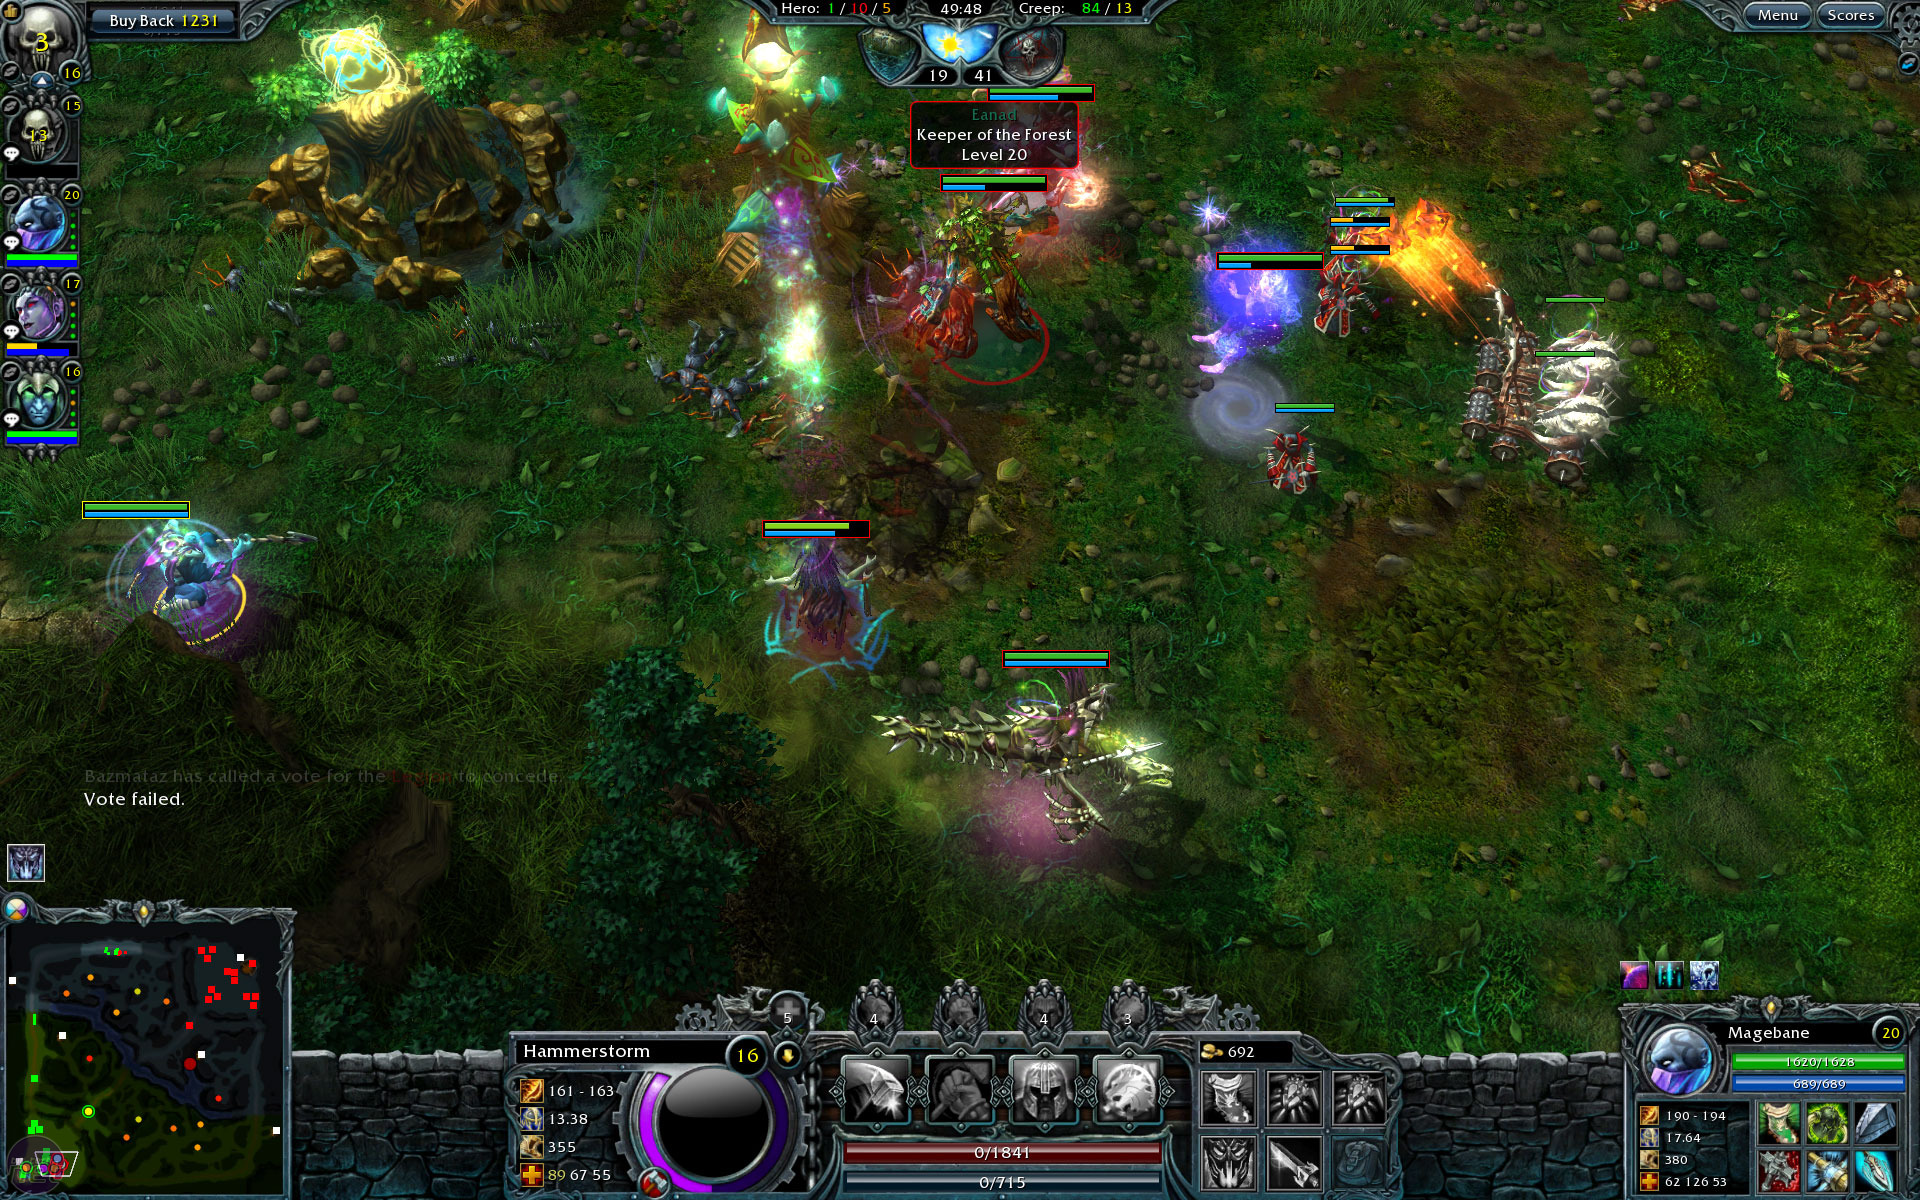 heroes of newerth flamboyant announcer